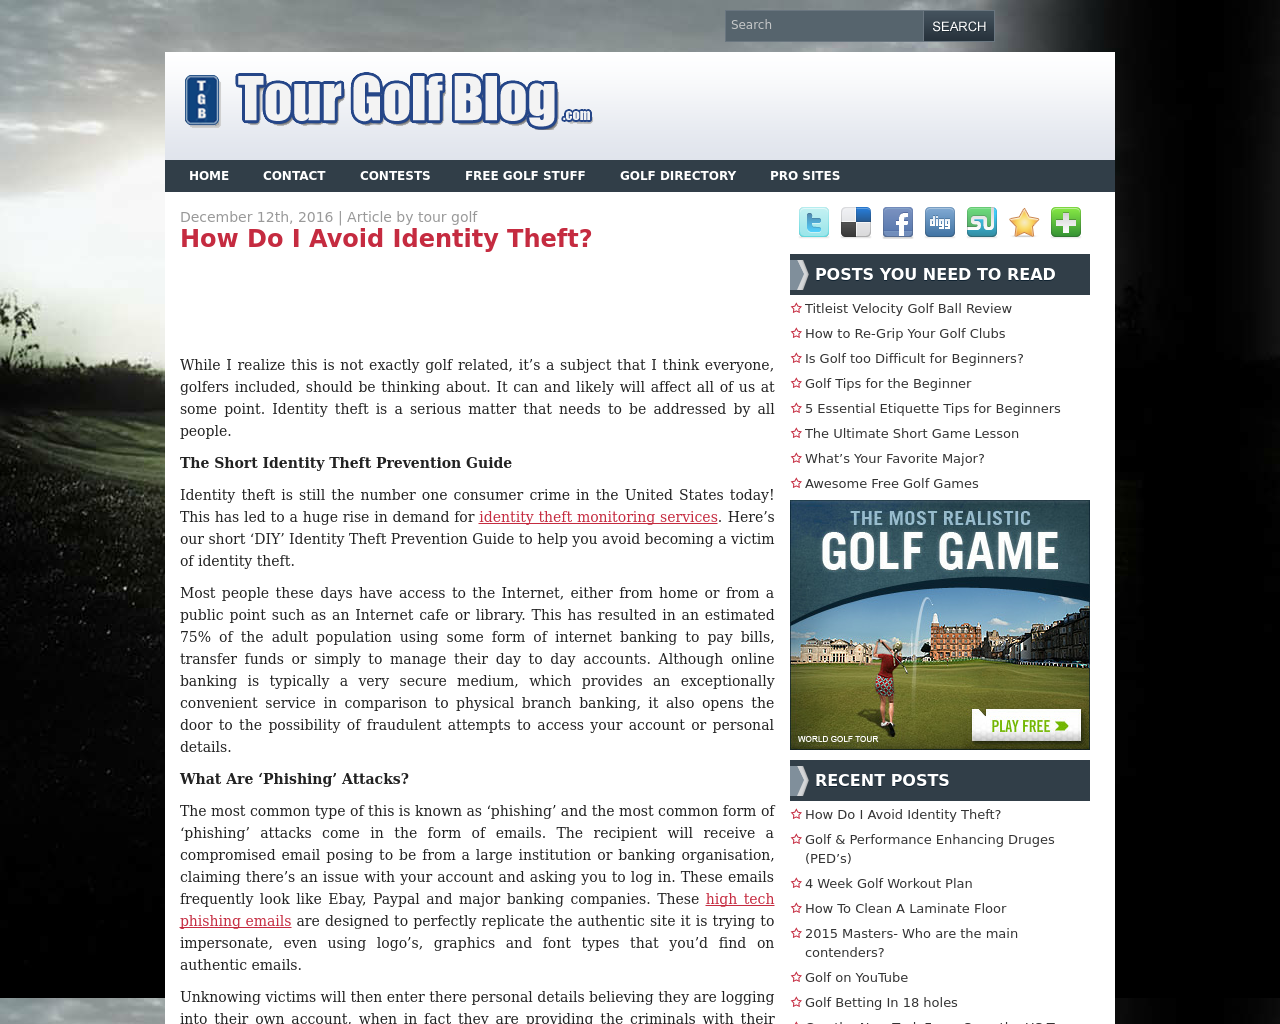 Tour-Golf-Blog-Advertising-Reviews-Pricing